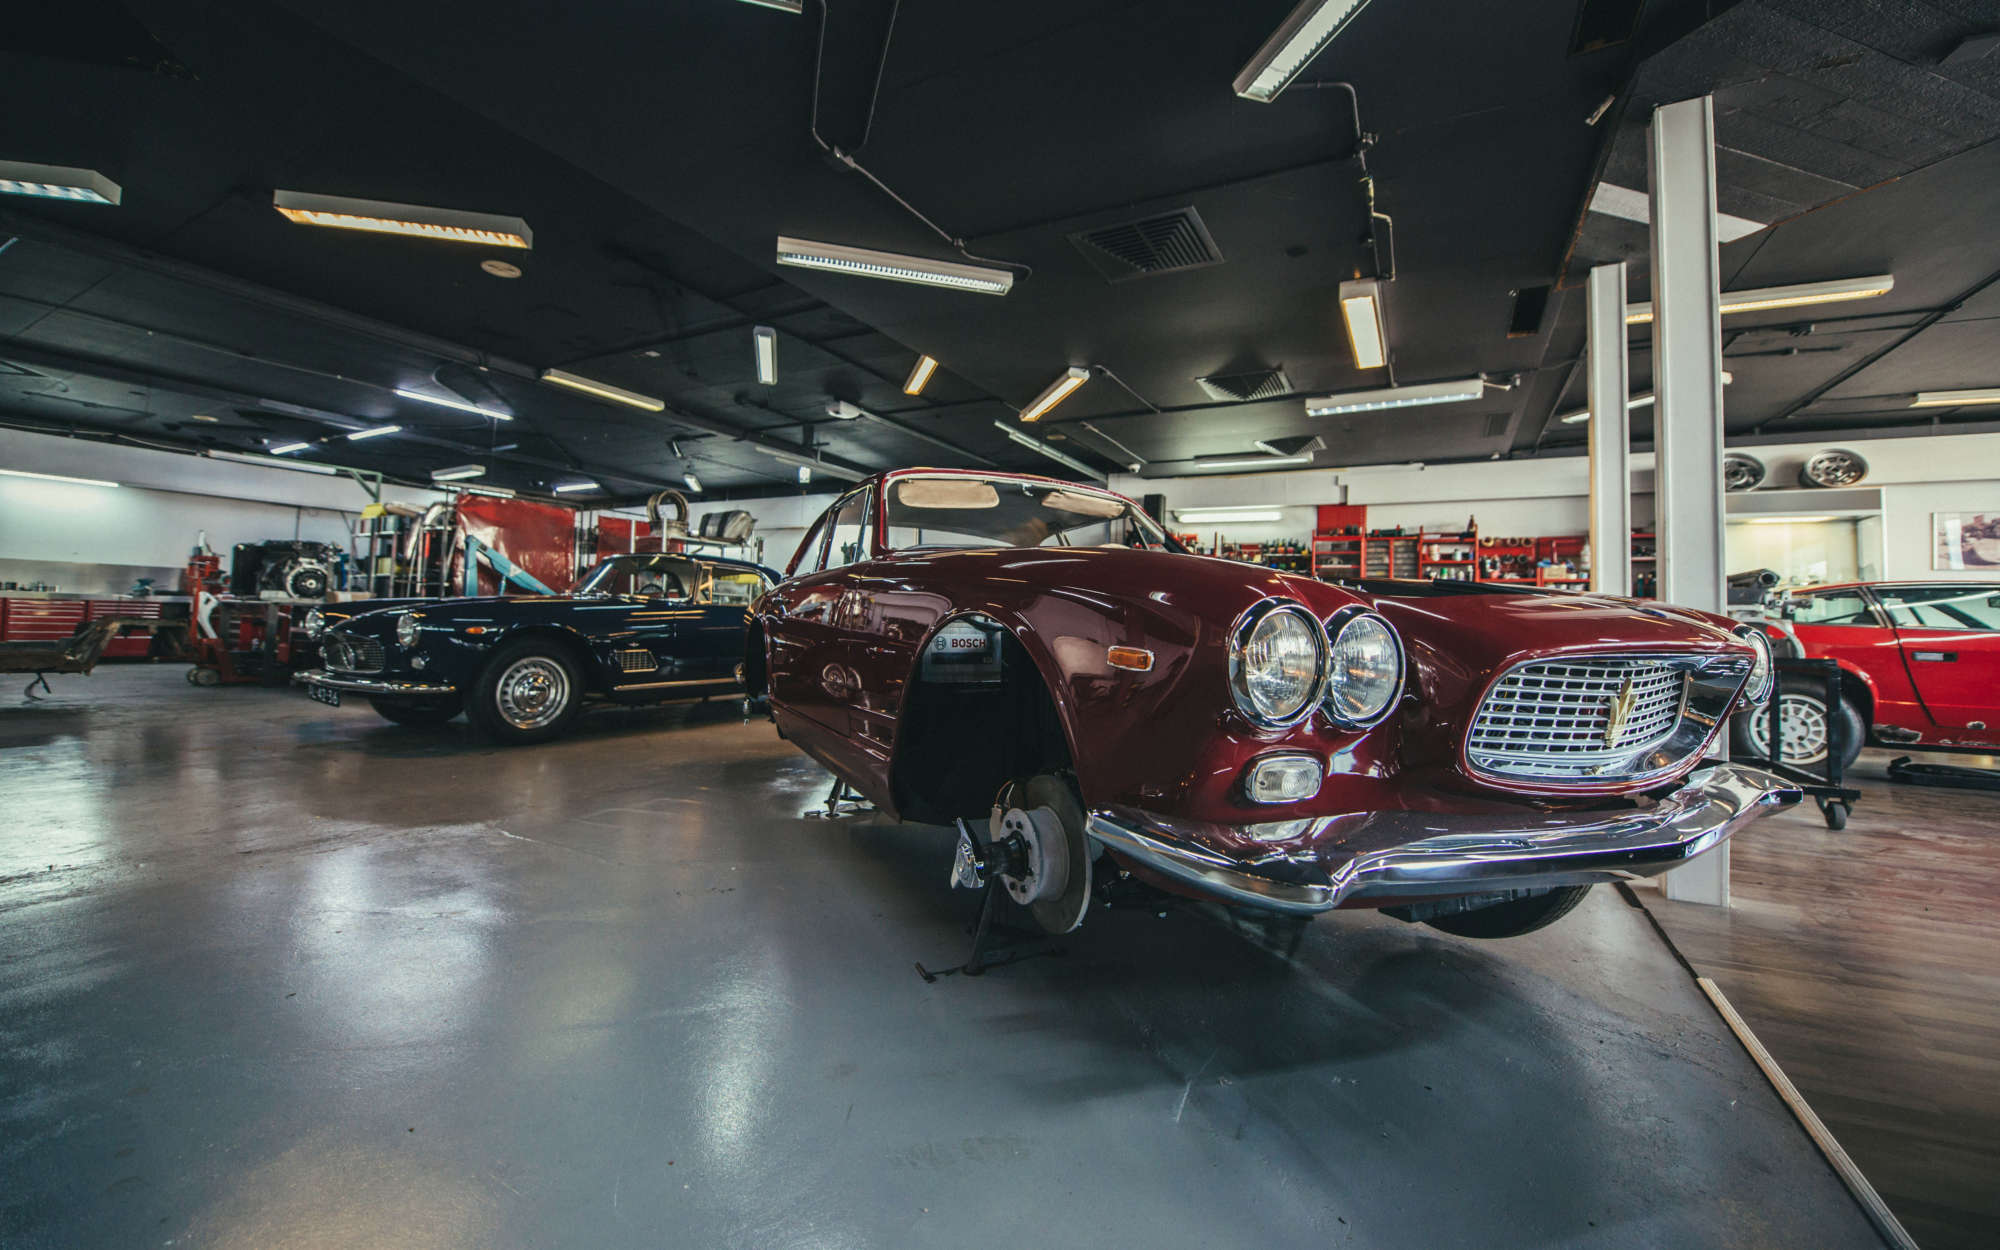 Lapre Maserati workshop header image 6000x3750